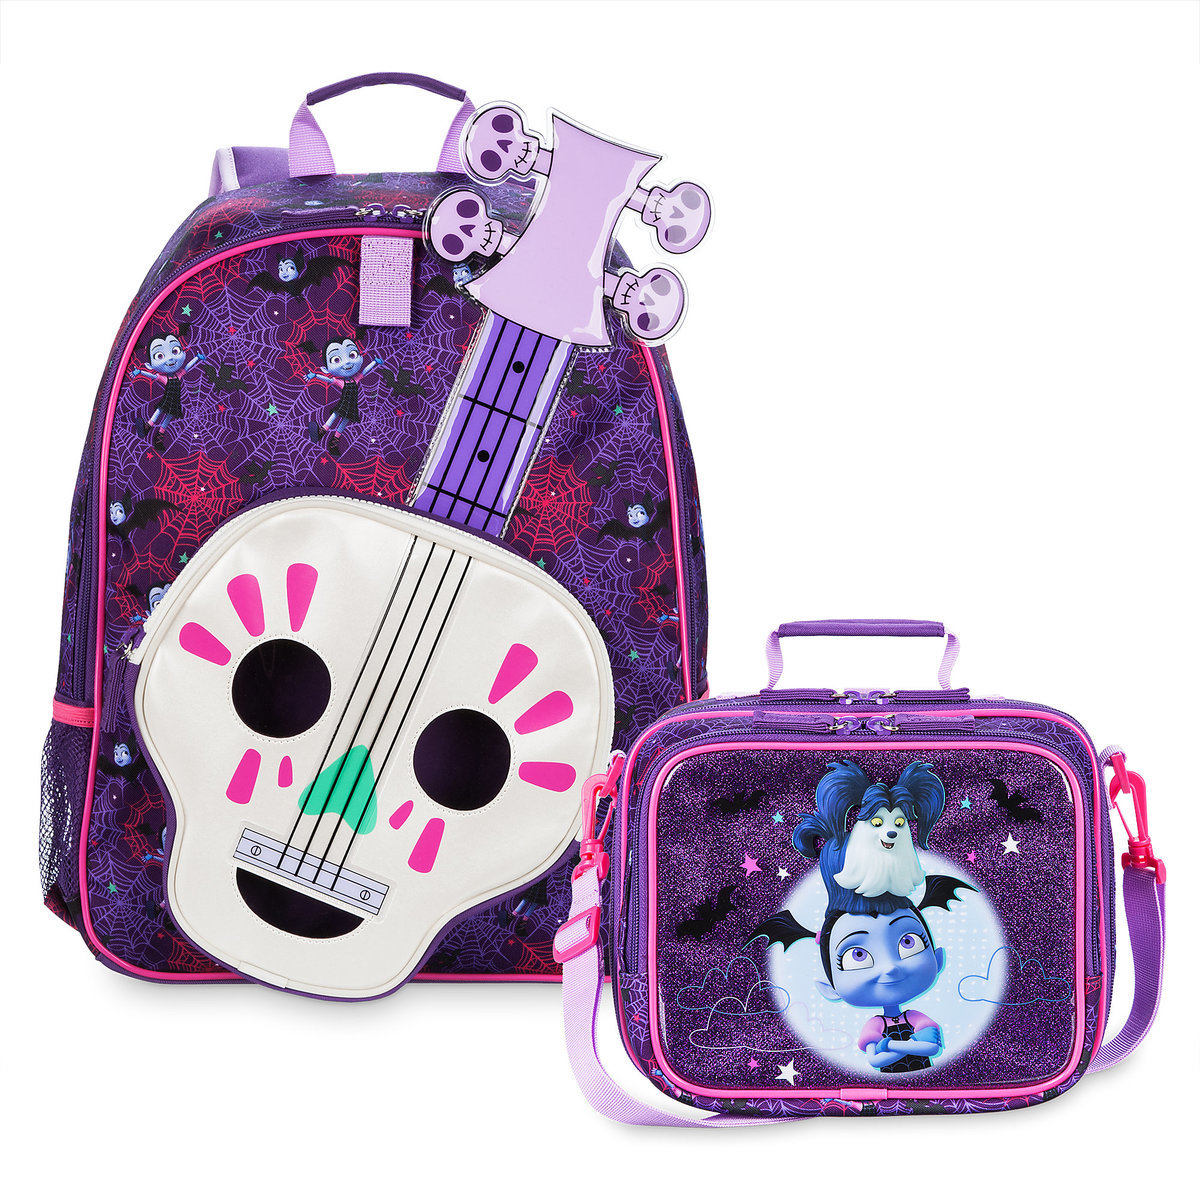 75f0051923b Product Image of Vampirina Backpack and Lunch Tote Collection   1